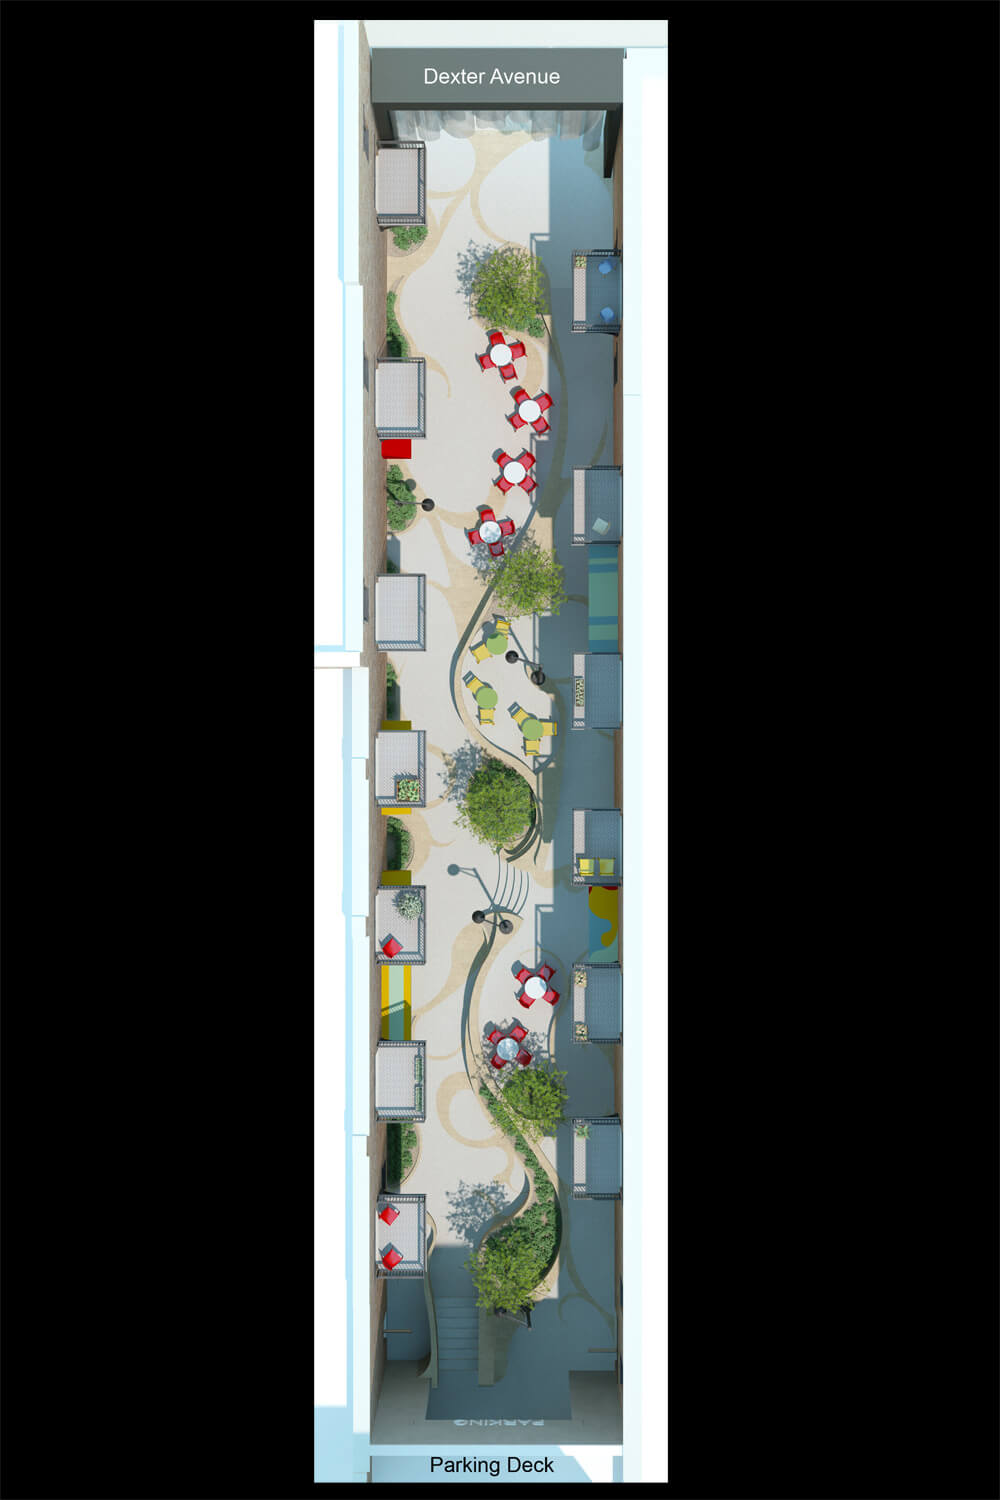 Dexter Alley Park Designed by Foshee Architecture - Overall Floor Plan View